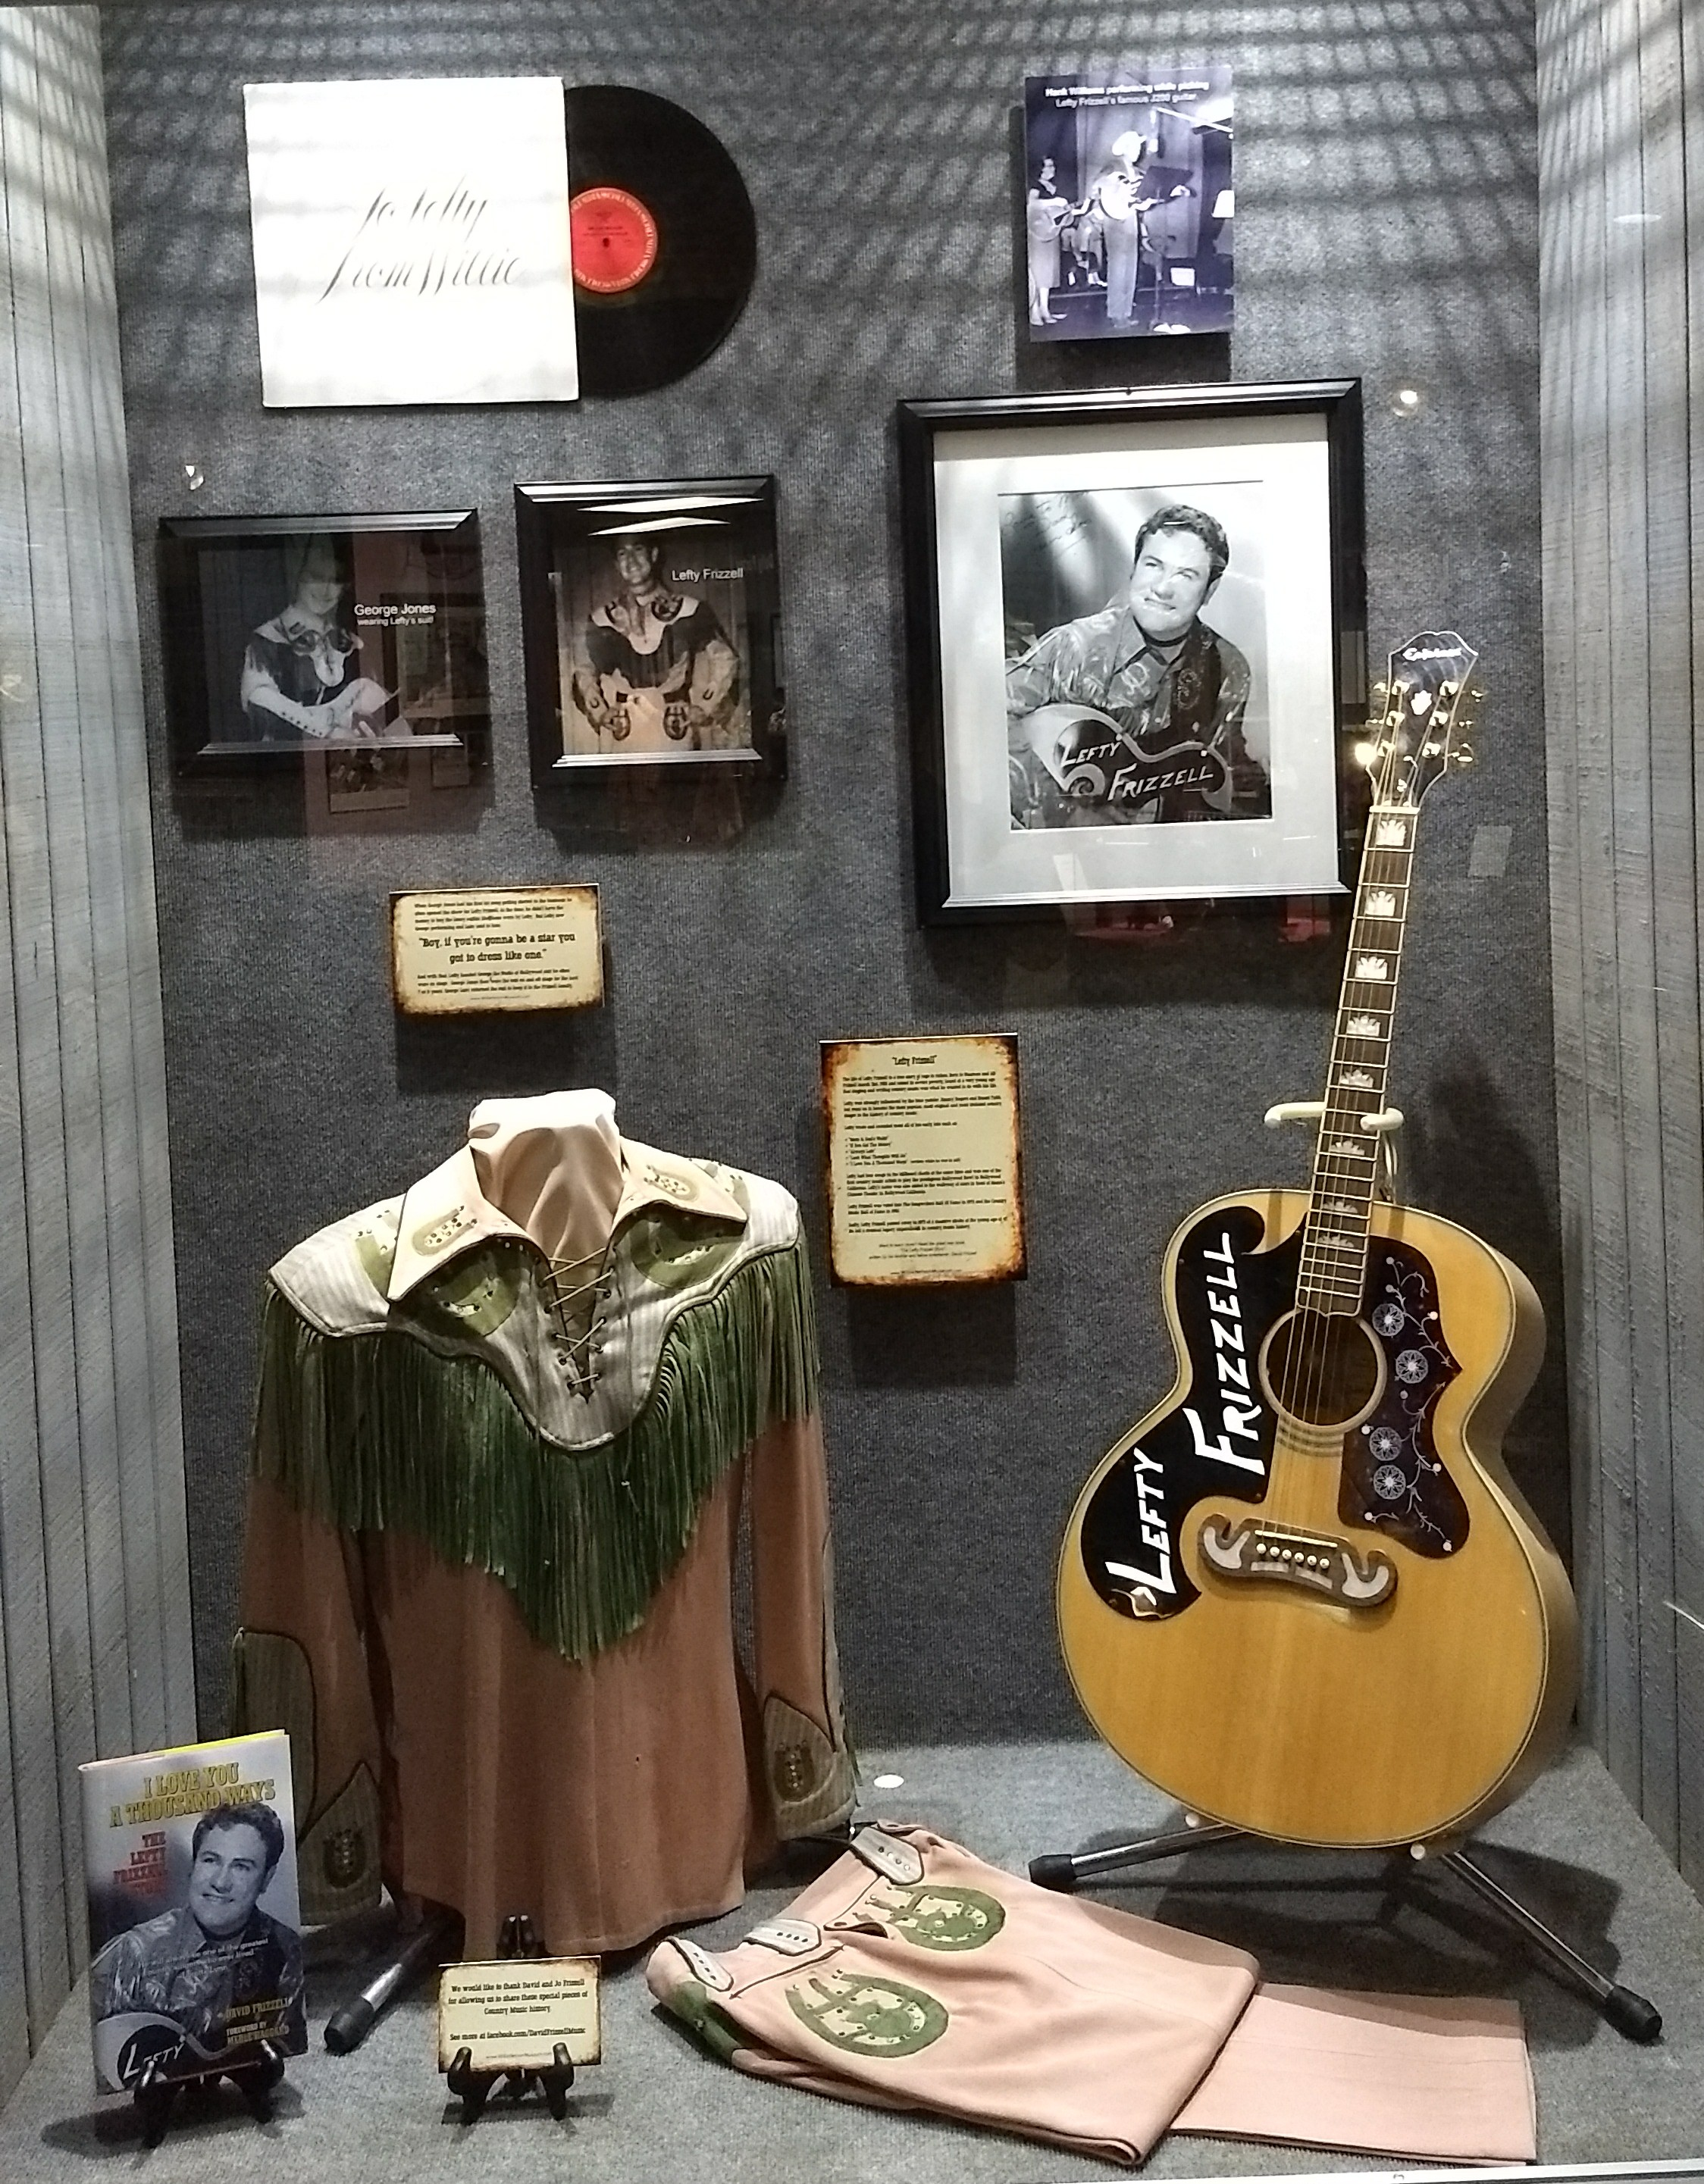 Cool little Lefty Frizzell display